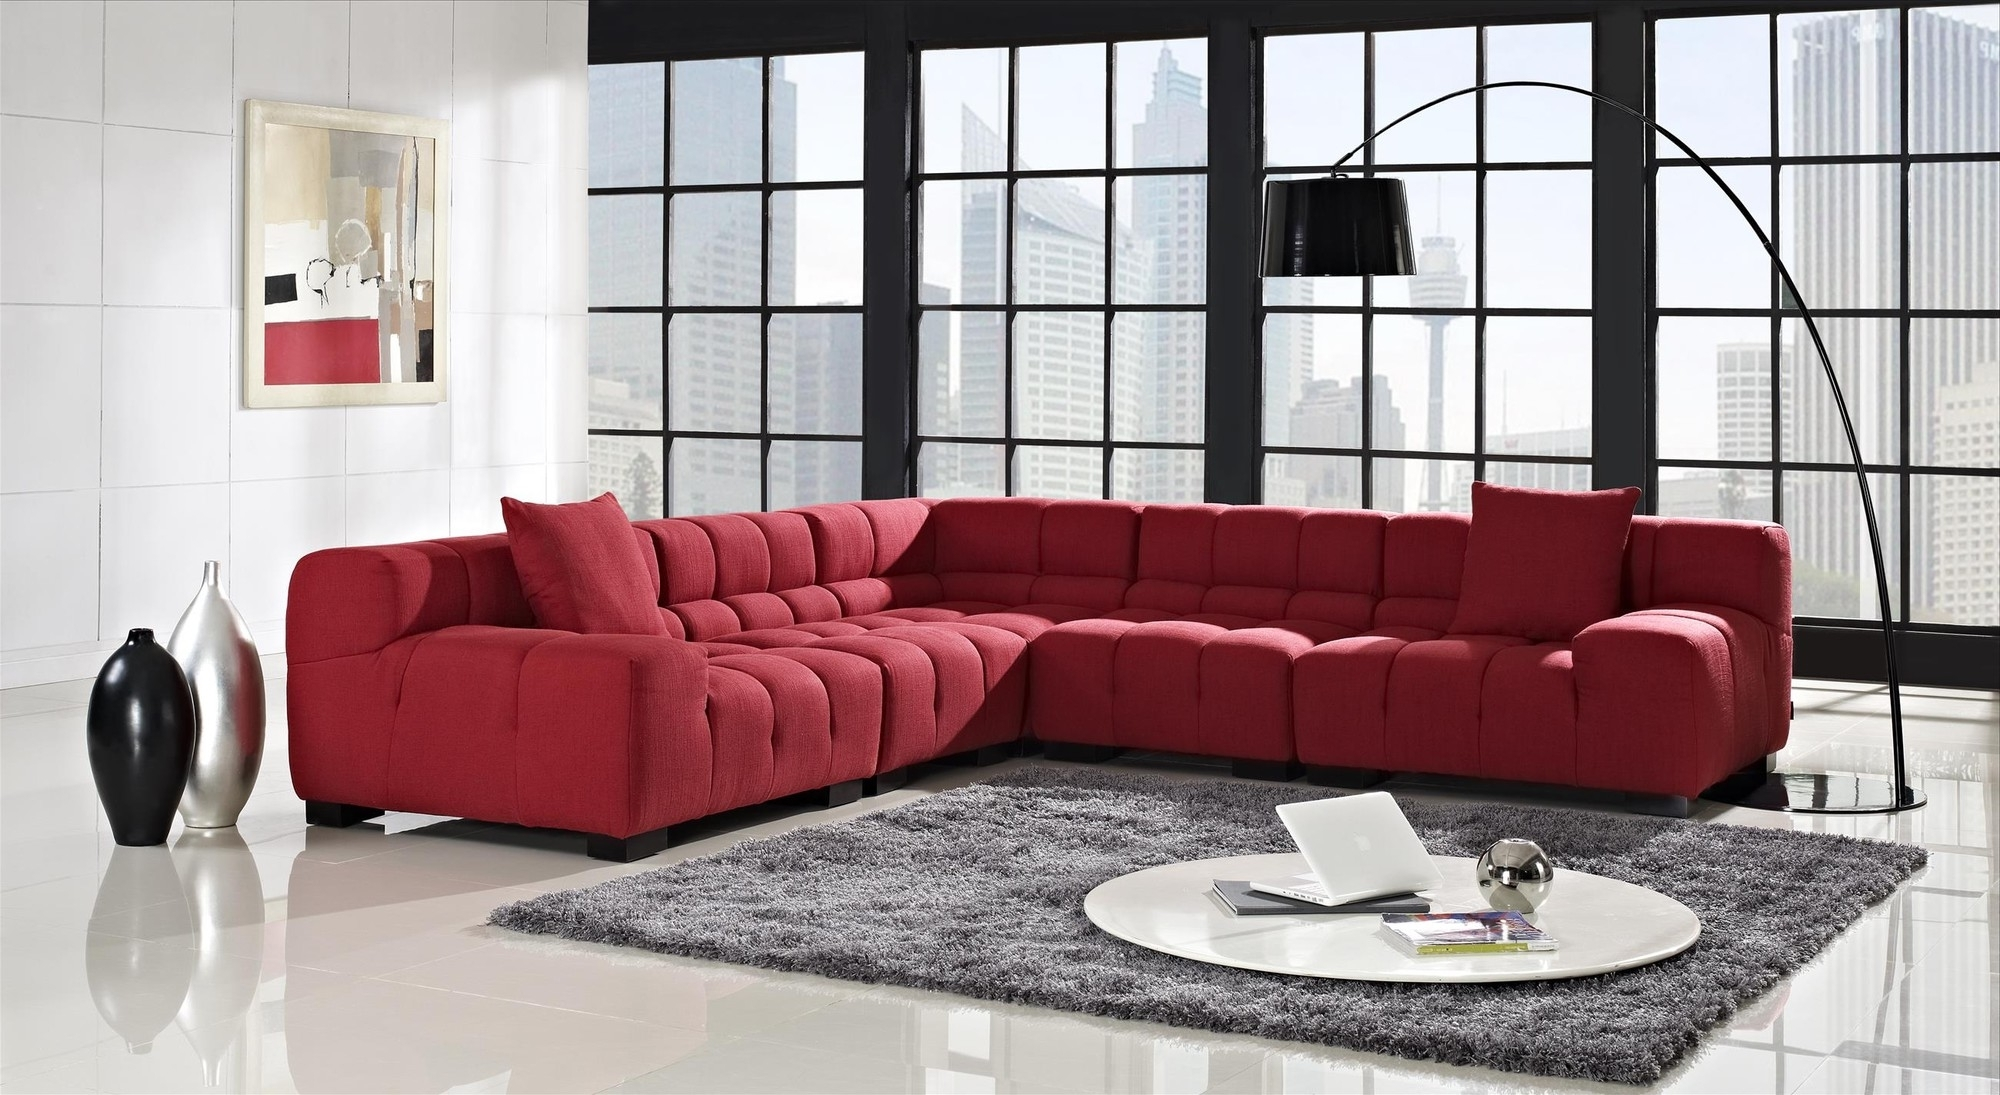 Most Recent Furniture Awesome Modular Sectionals Sofas Hi Res Wallpaper Photos Intended For Leather Modular Sectional Sofas (View 13 of 20)